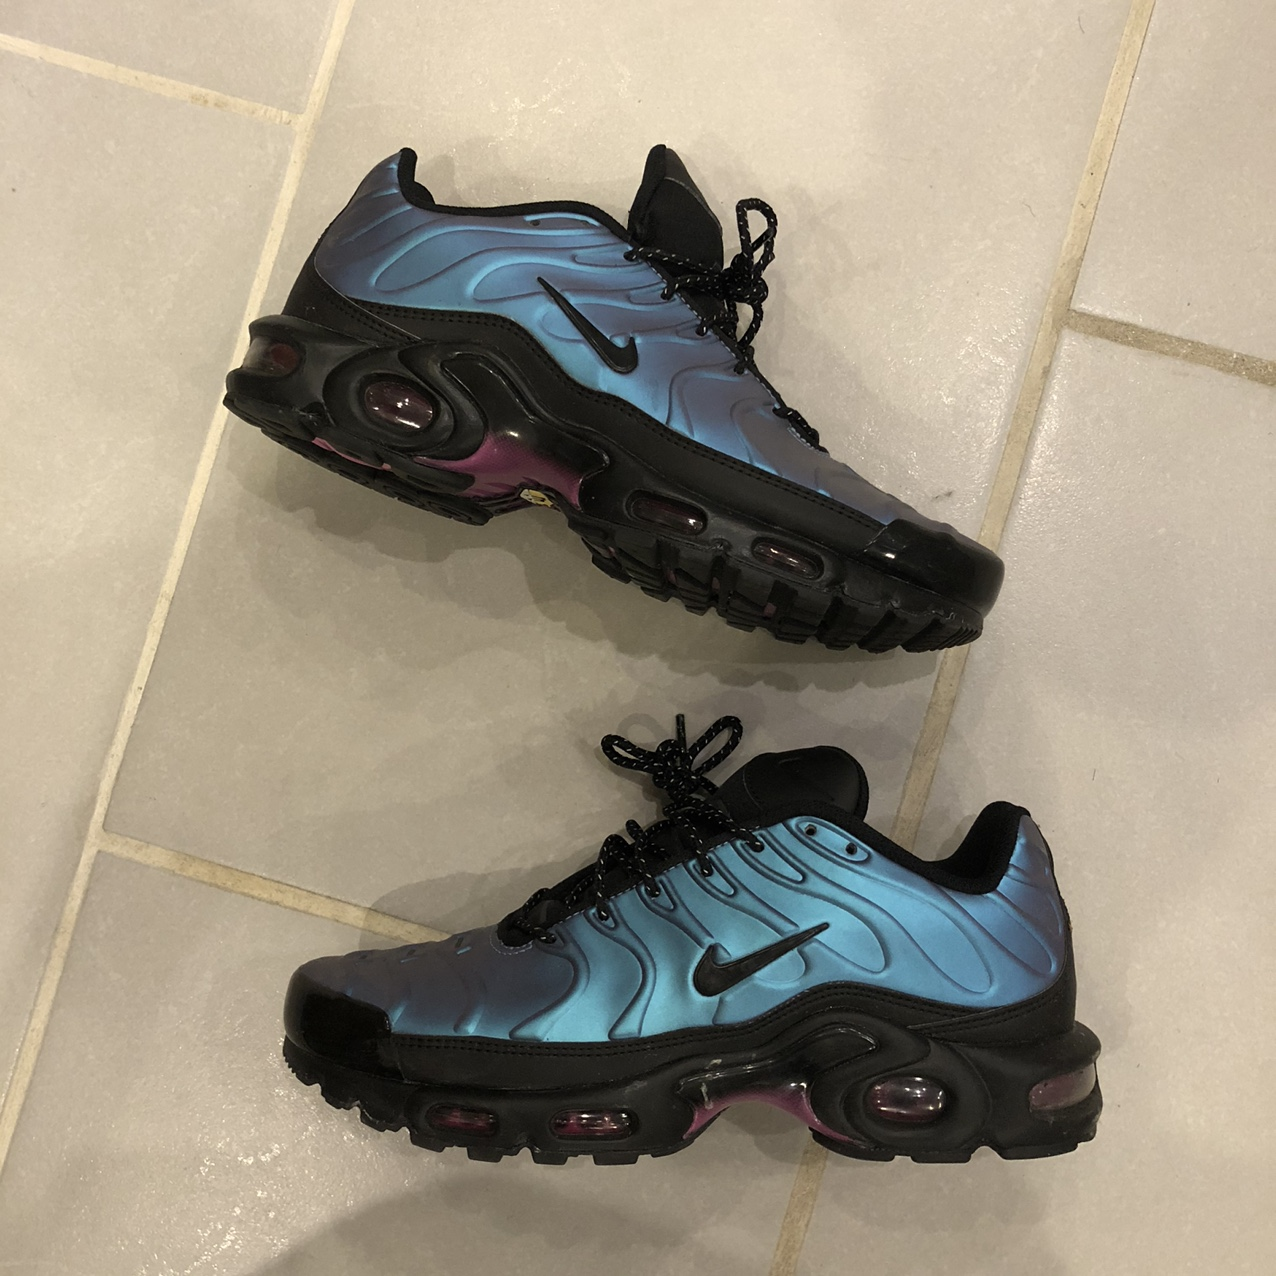 Selling these Nike Air Max Plus TN